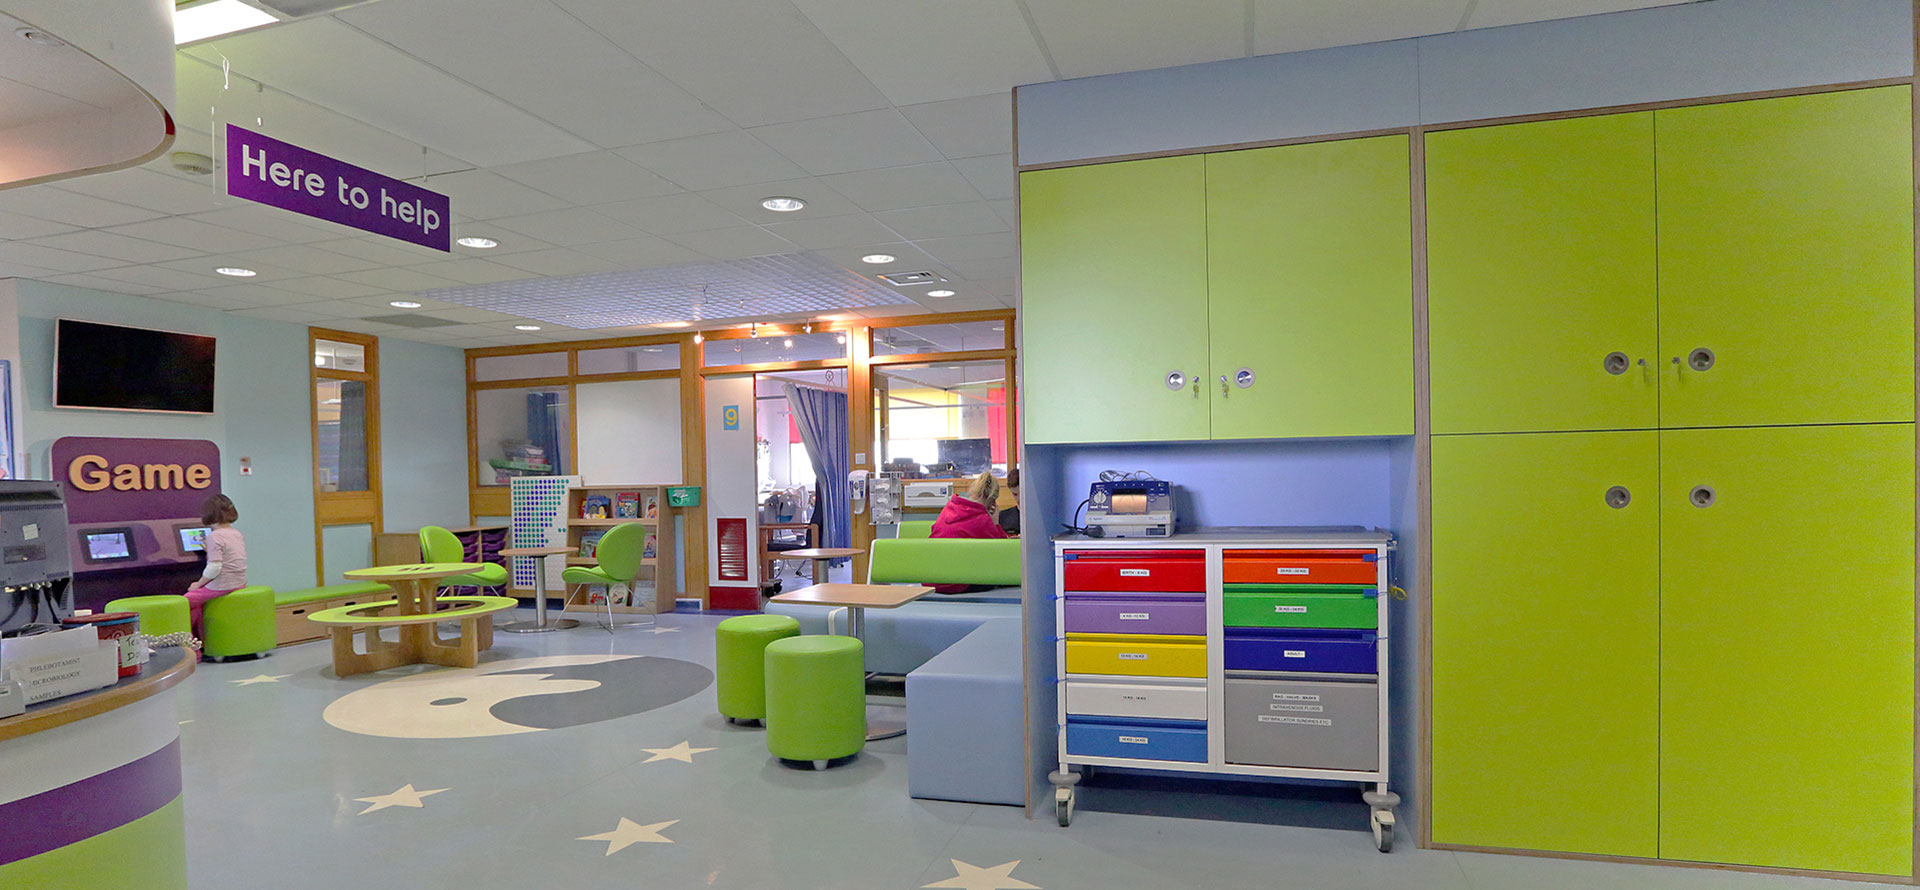 Wayfinding floor graphics within the Pediatric Day Space at Yeovil District Hospital